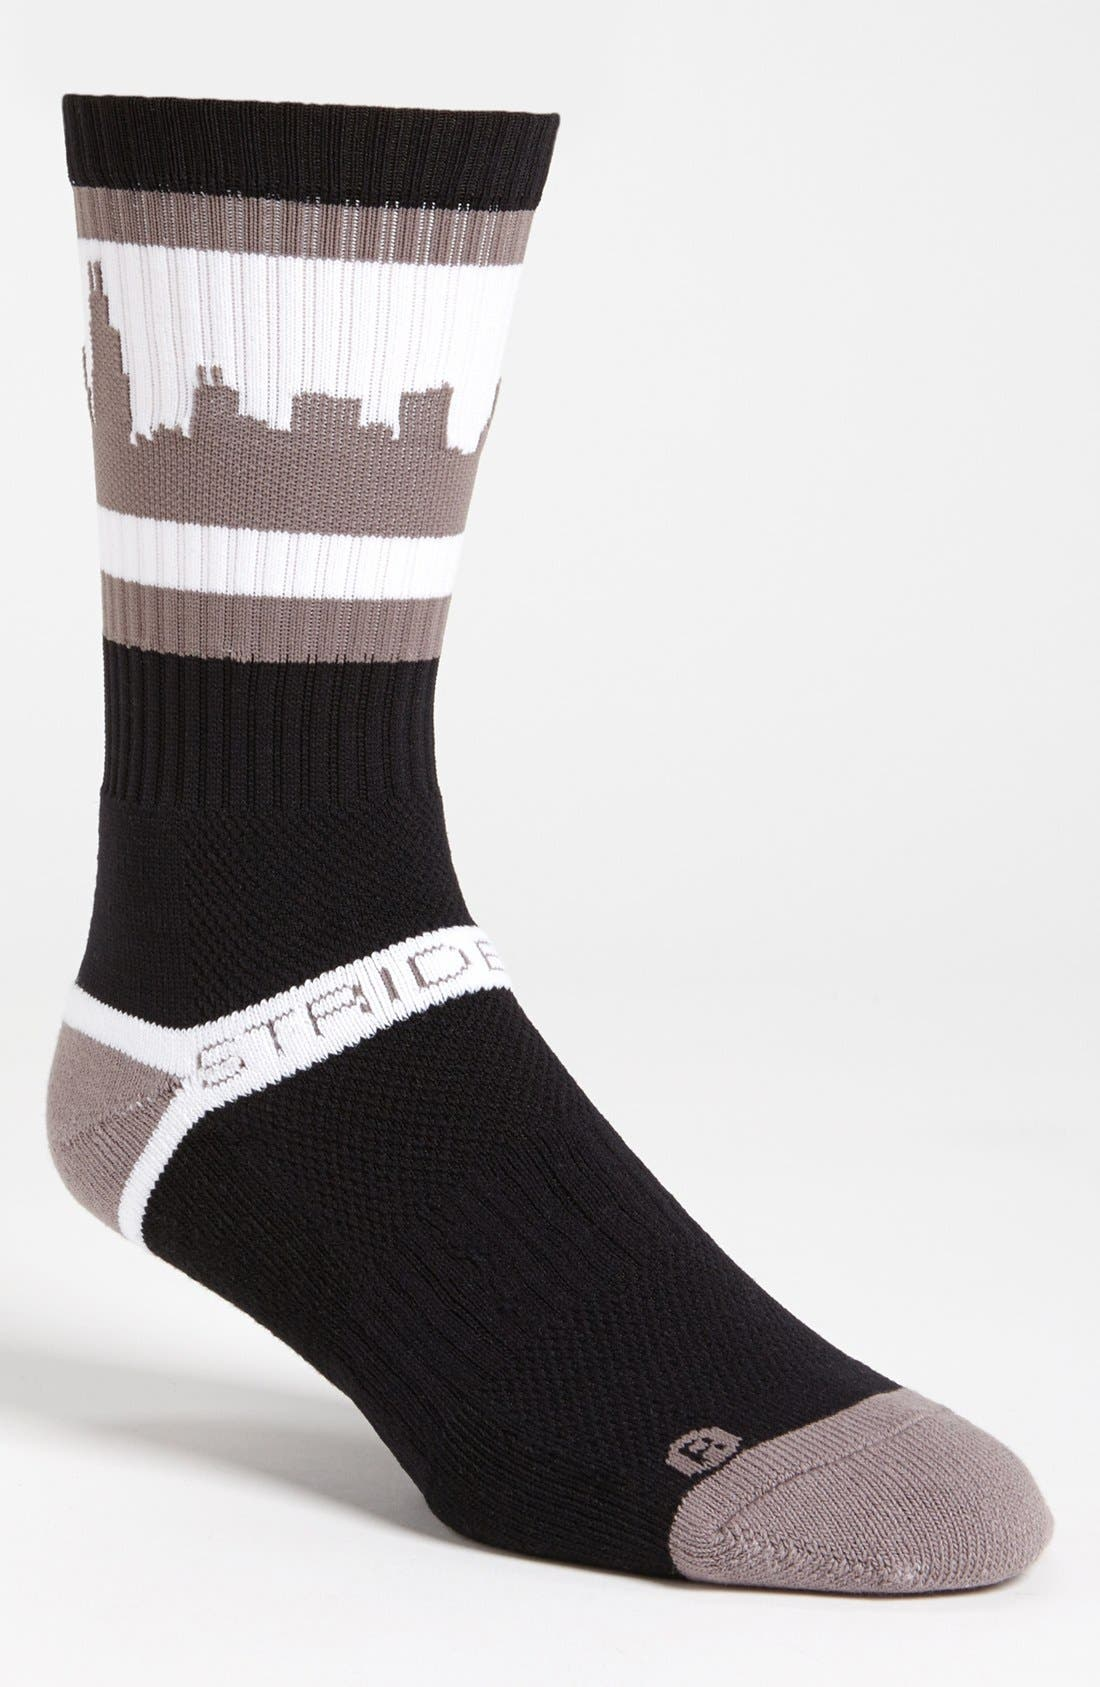 Alternate Image 1 Selected - STRIDELINE 'Chicago' Socks